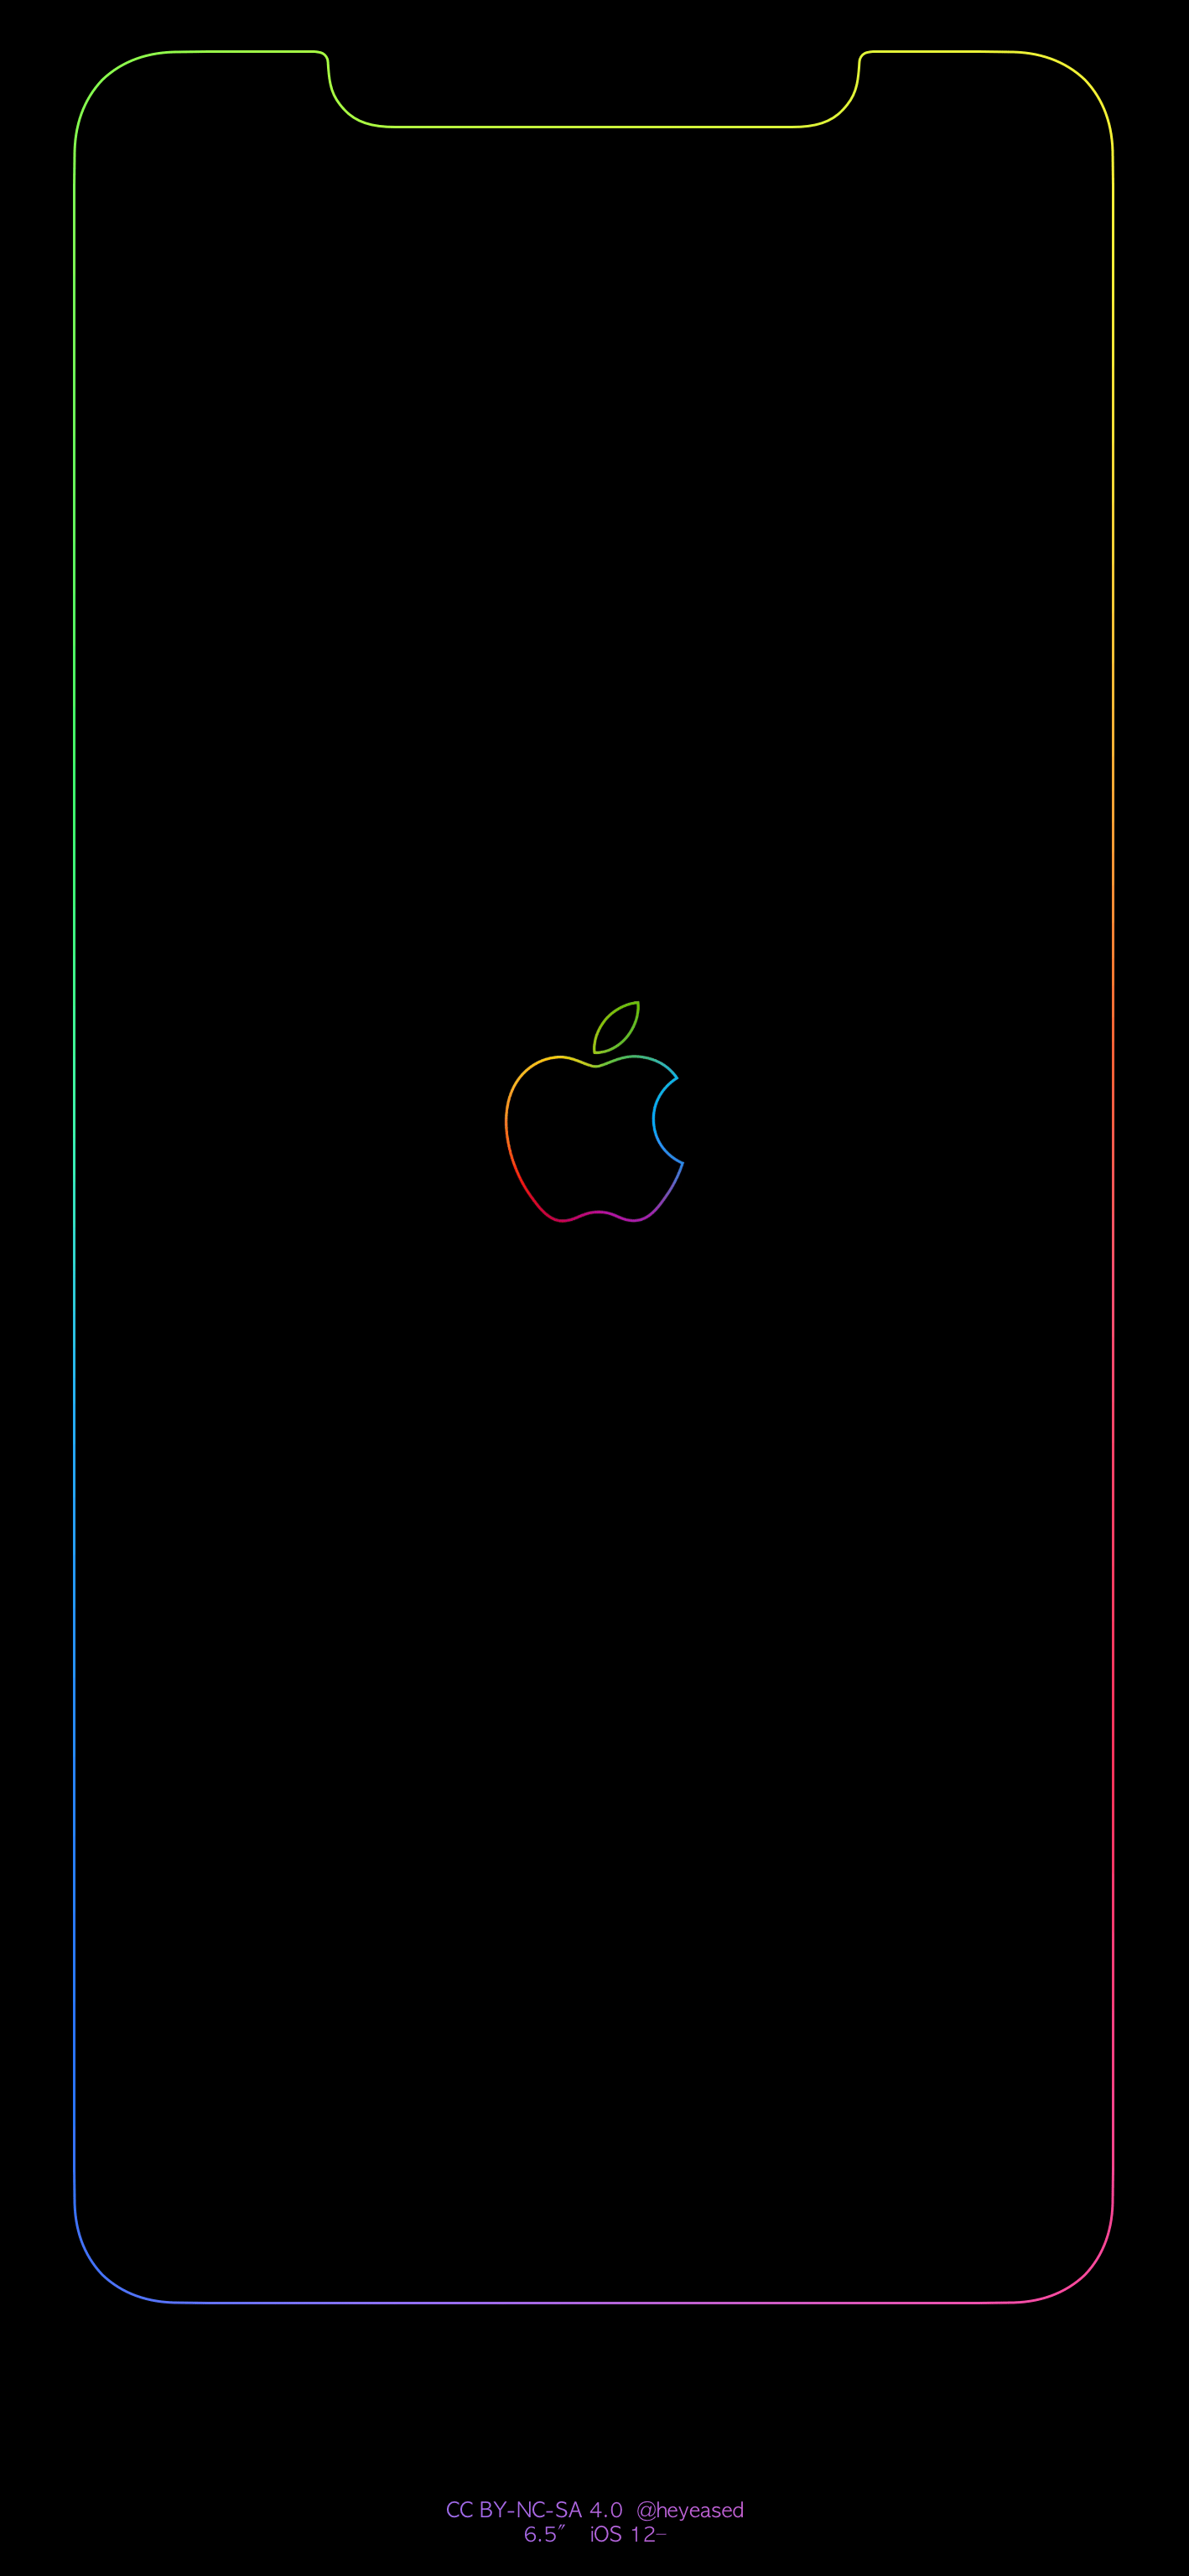 Iphone 11 Pro Wallpaper Border | Iphone Wallpaper Hd